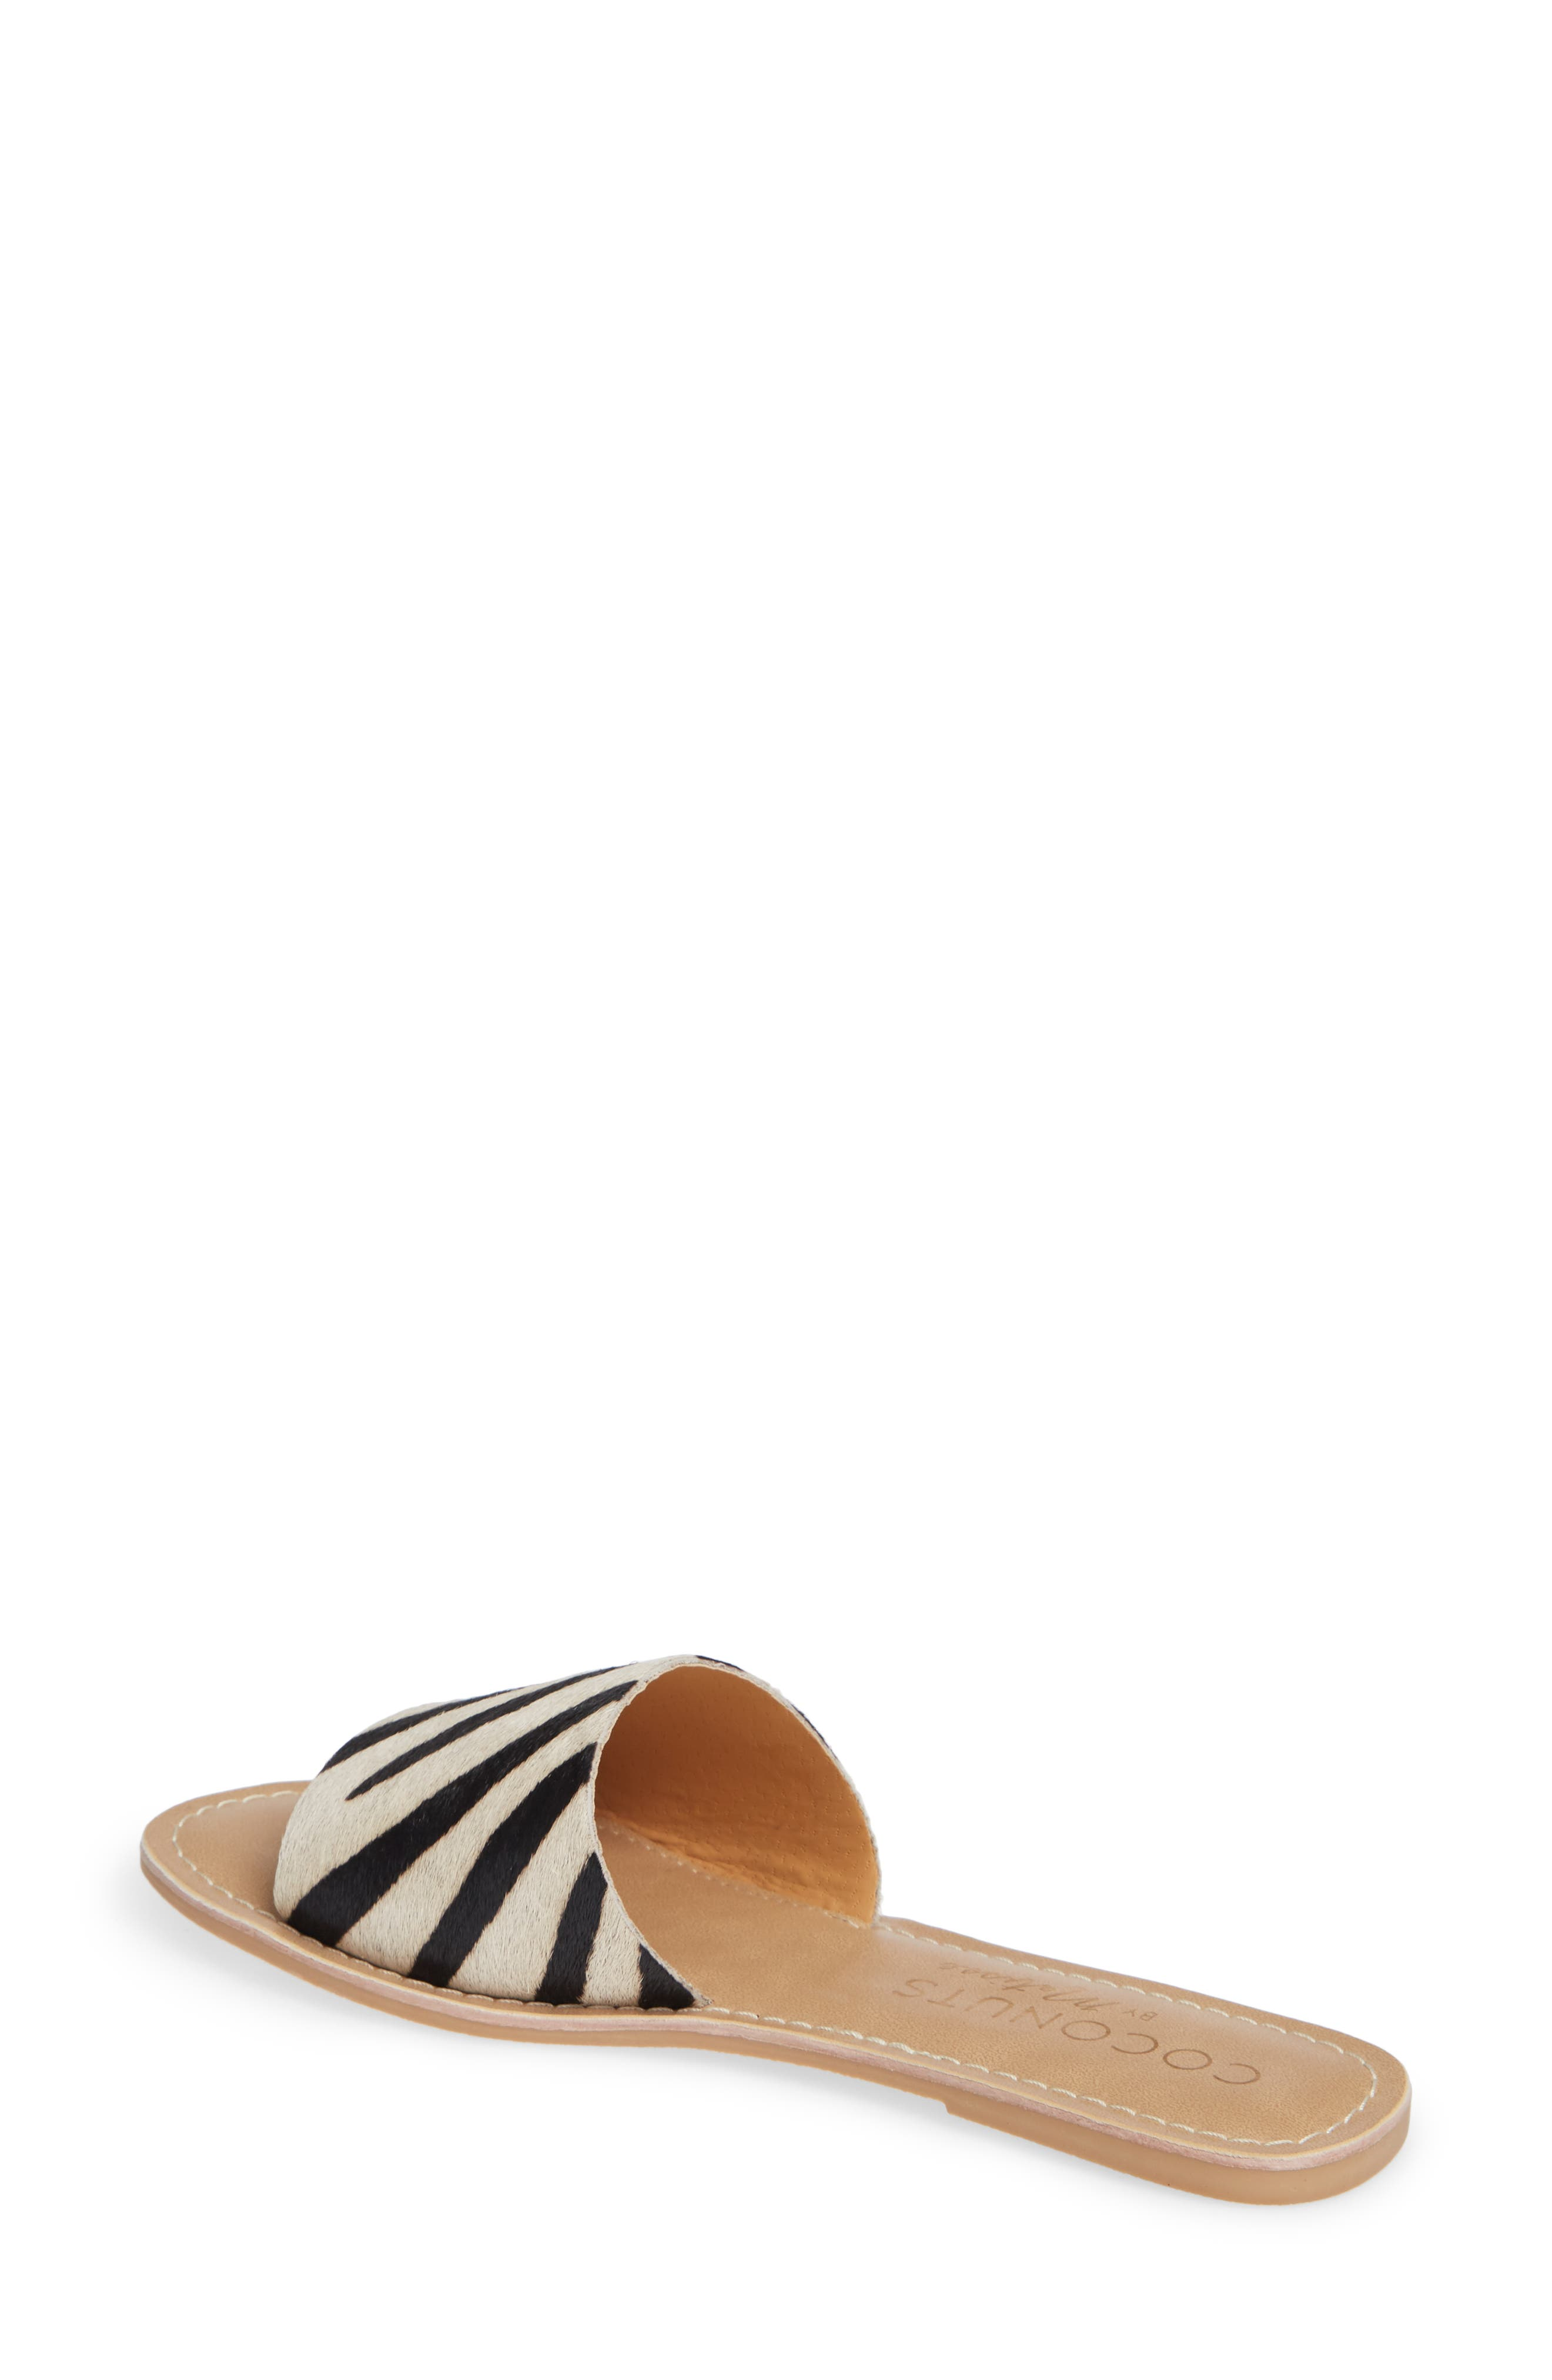 Cabana Genuine Calf Hair Slide Sandal,                             Alternate thumbnail 2, color,                             ZEBRA PRINT CALF HAIR